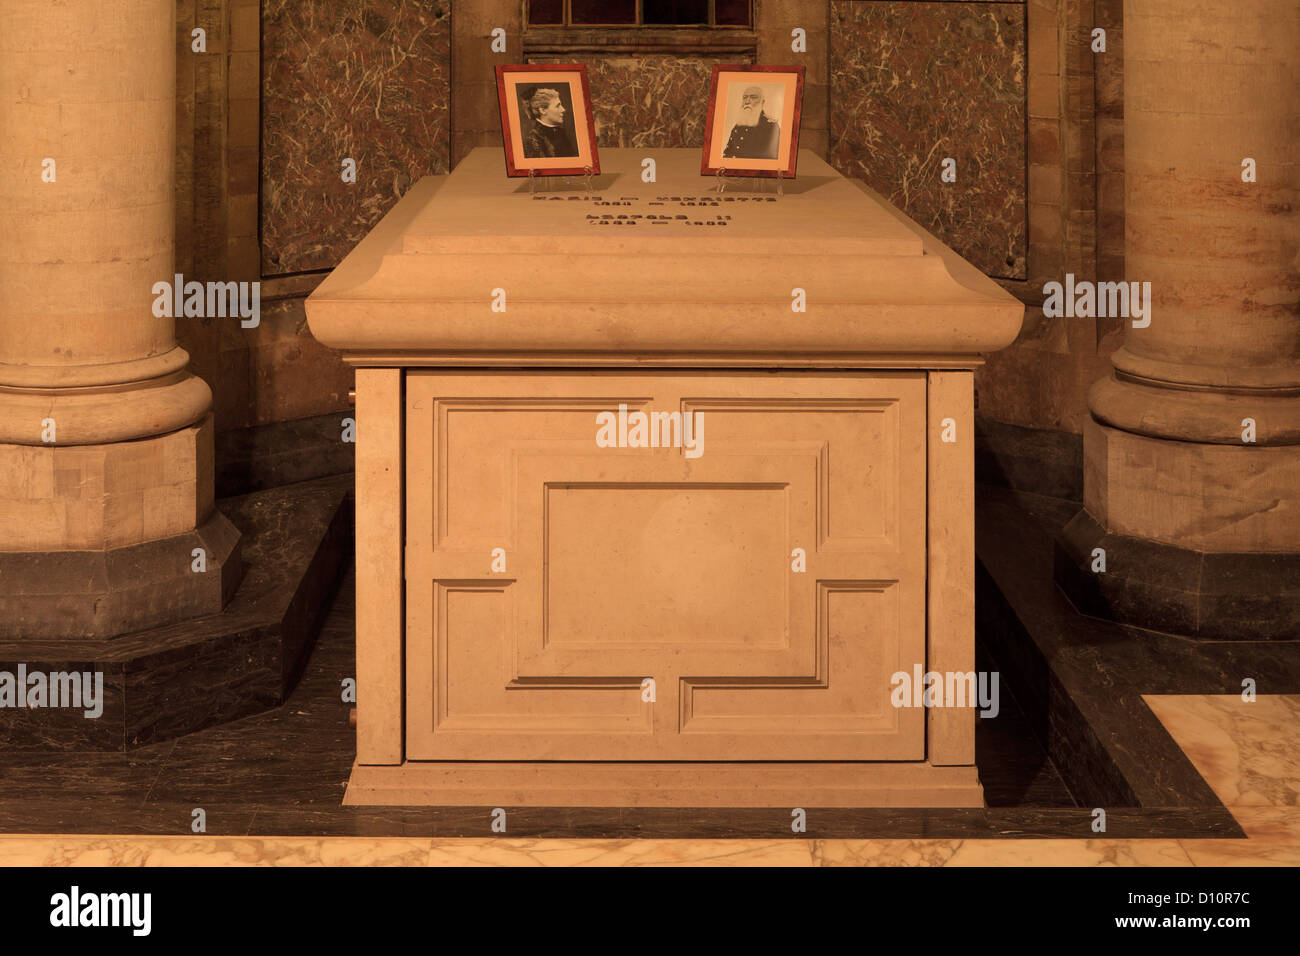 Grave of King Leopold II and Queen Marie Henriette at the Royal Crypt in Laeken, Belgium - Stock Image